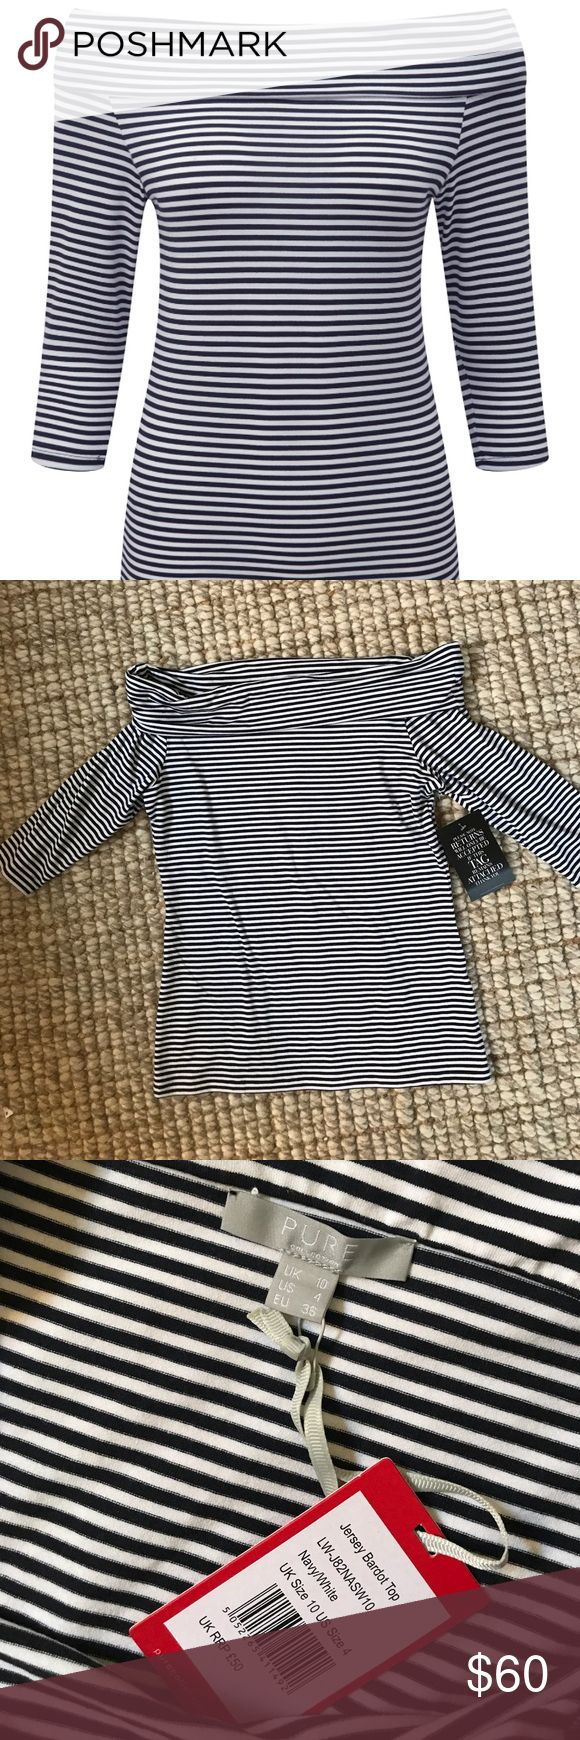 """Pure Collection off the shoulder top Blue and white striped """"Jersey Bardot Top"""". NWT. Pure Collection Tops"""